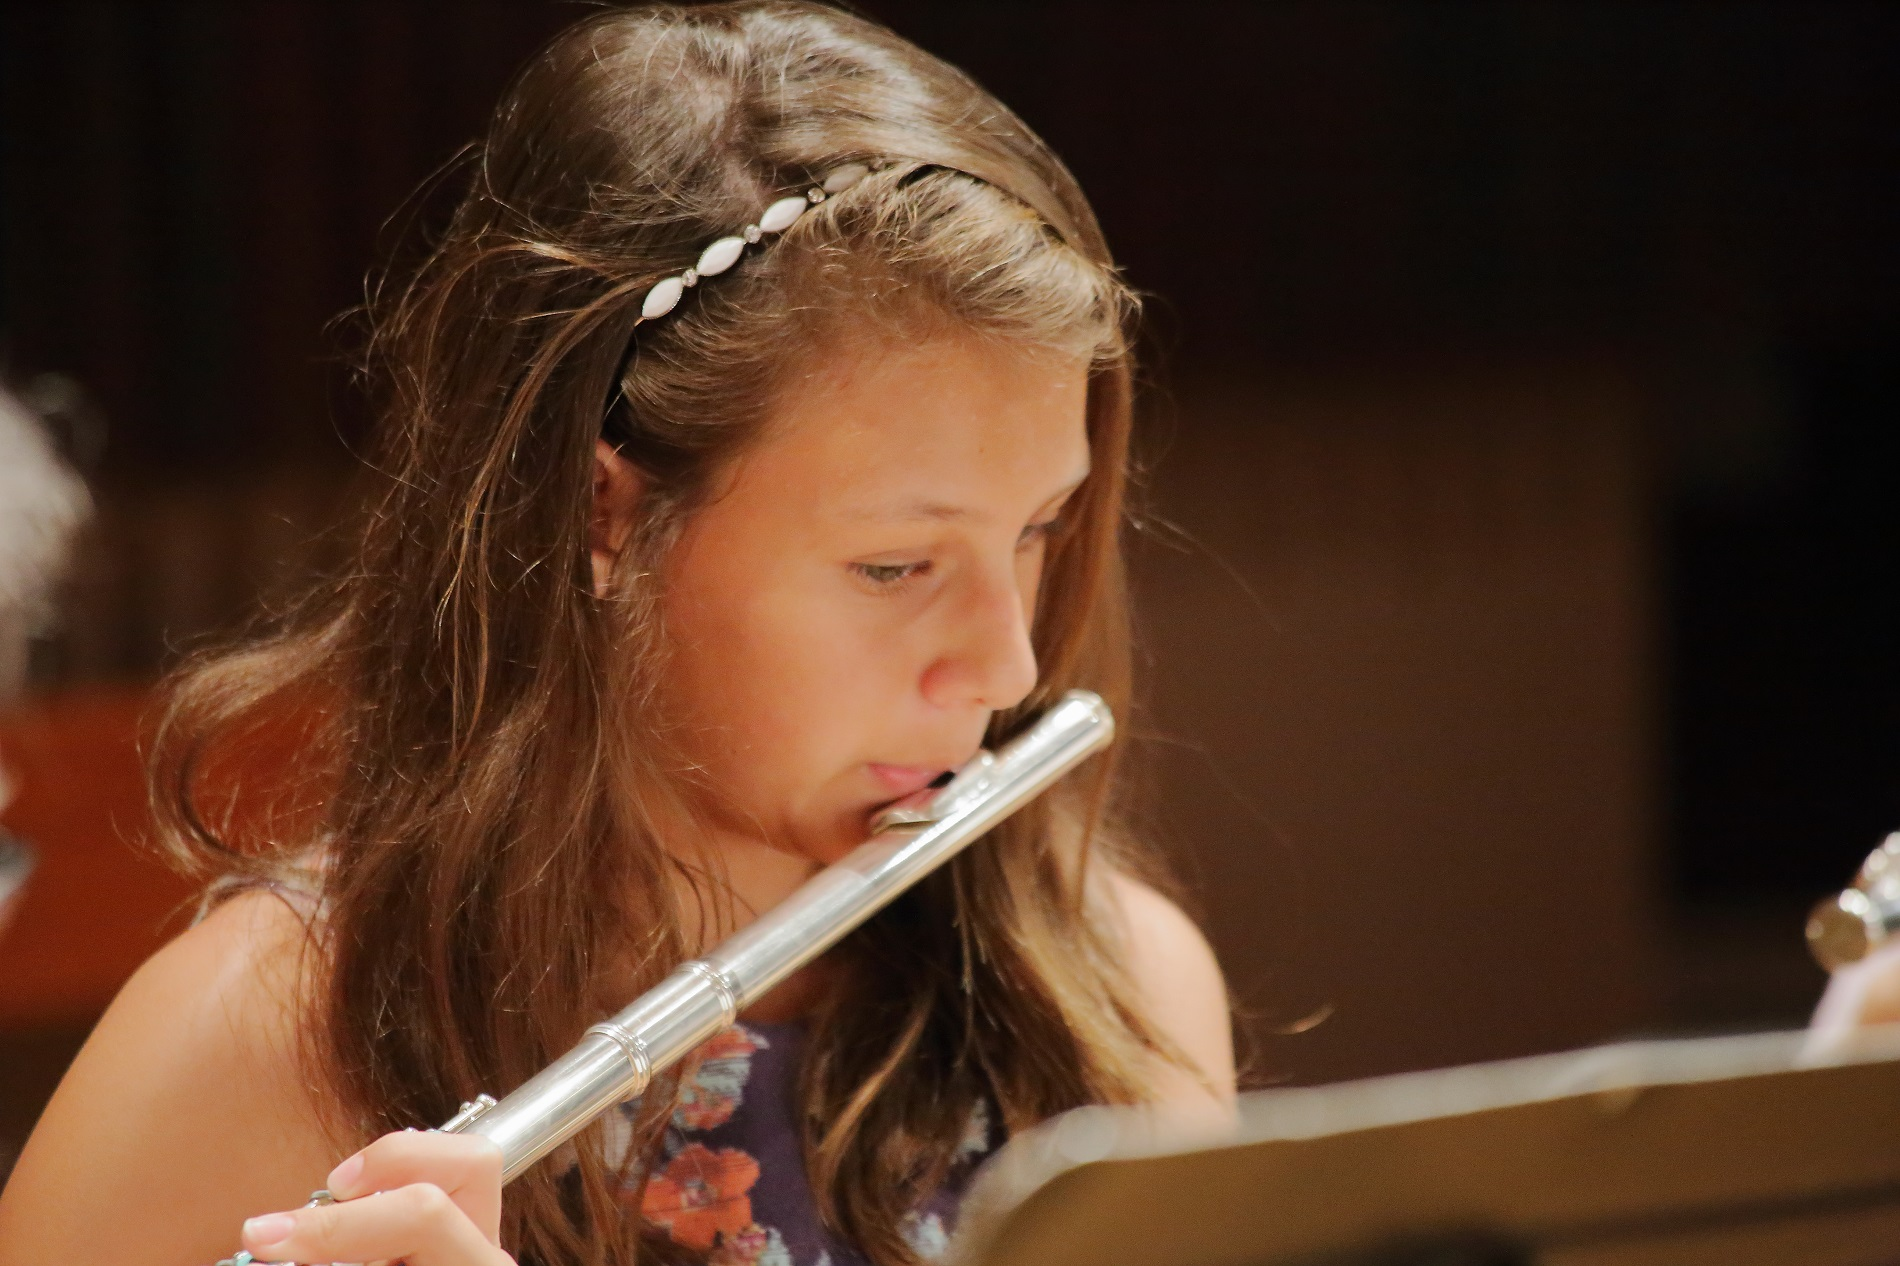 Student Membership for our Honolulu Flute Club